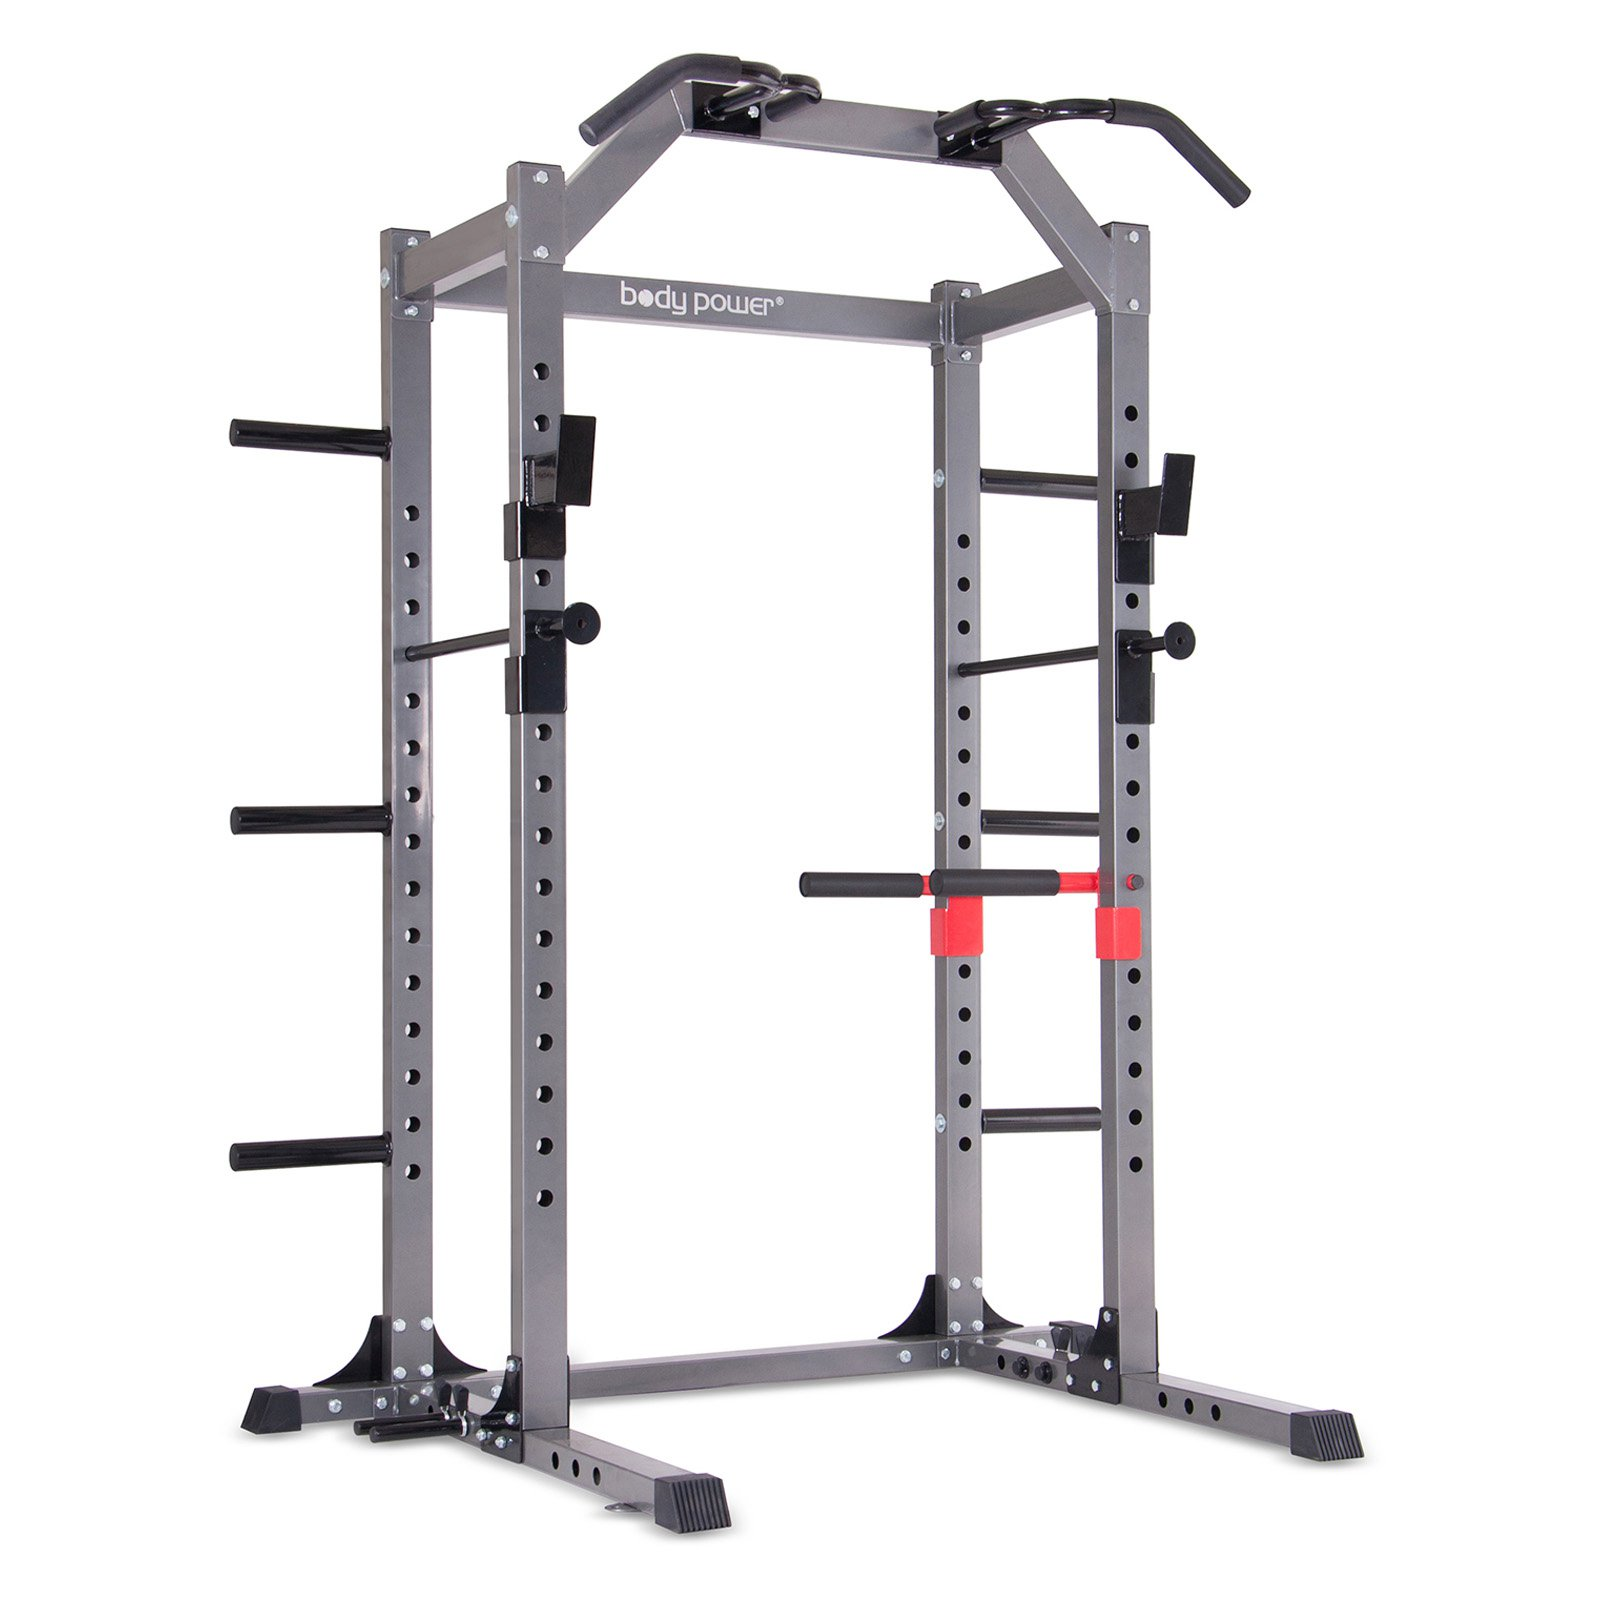 Body Power PBC5380 Deluxe Power Rack Cage System